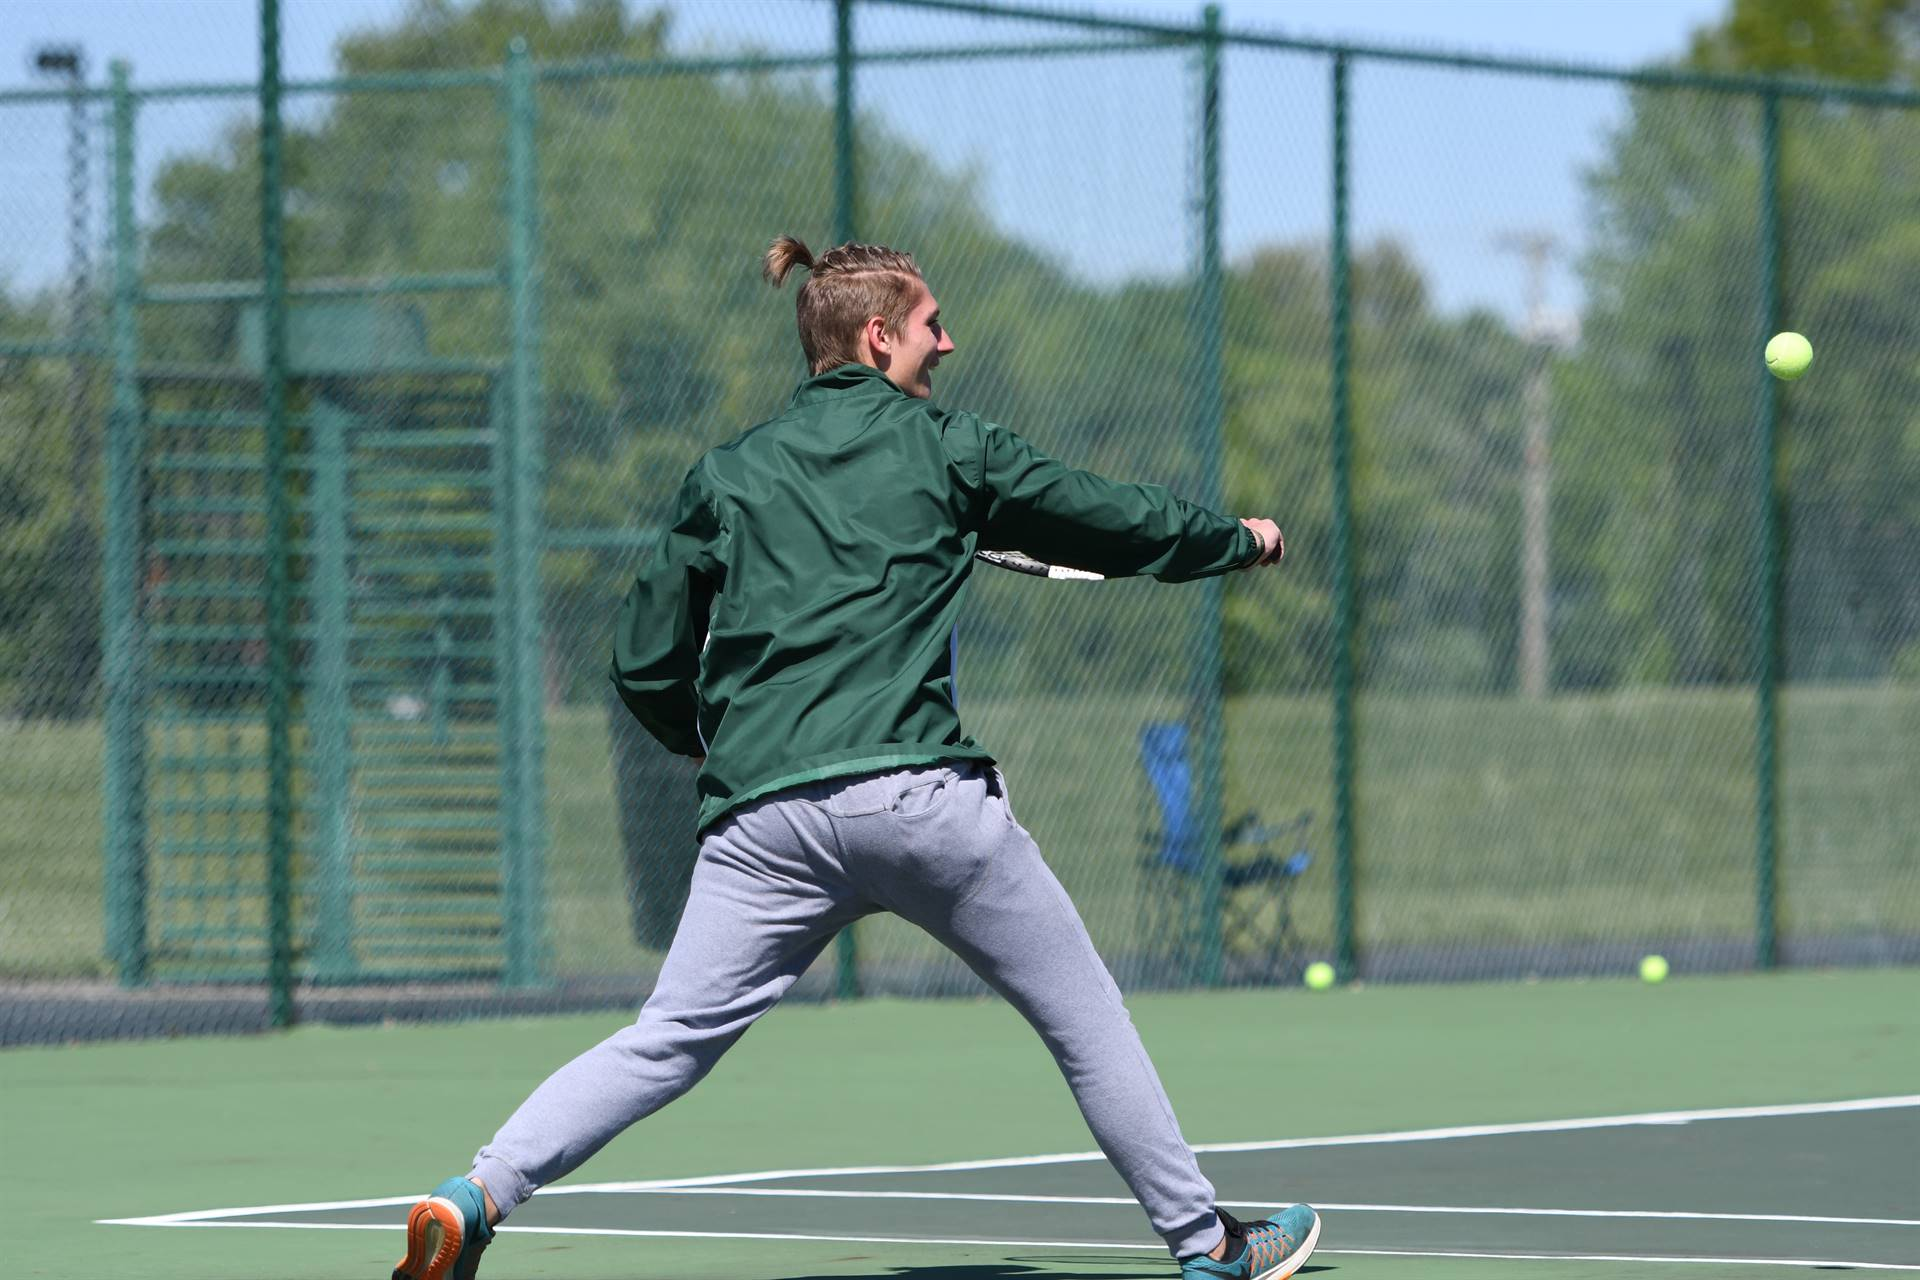 Alex hitting Backhand